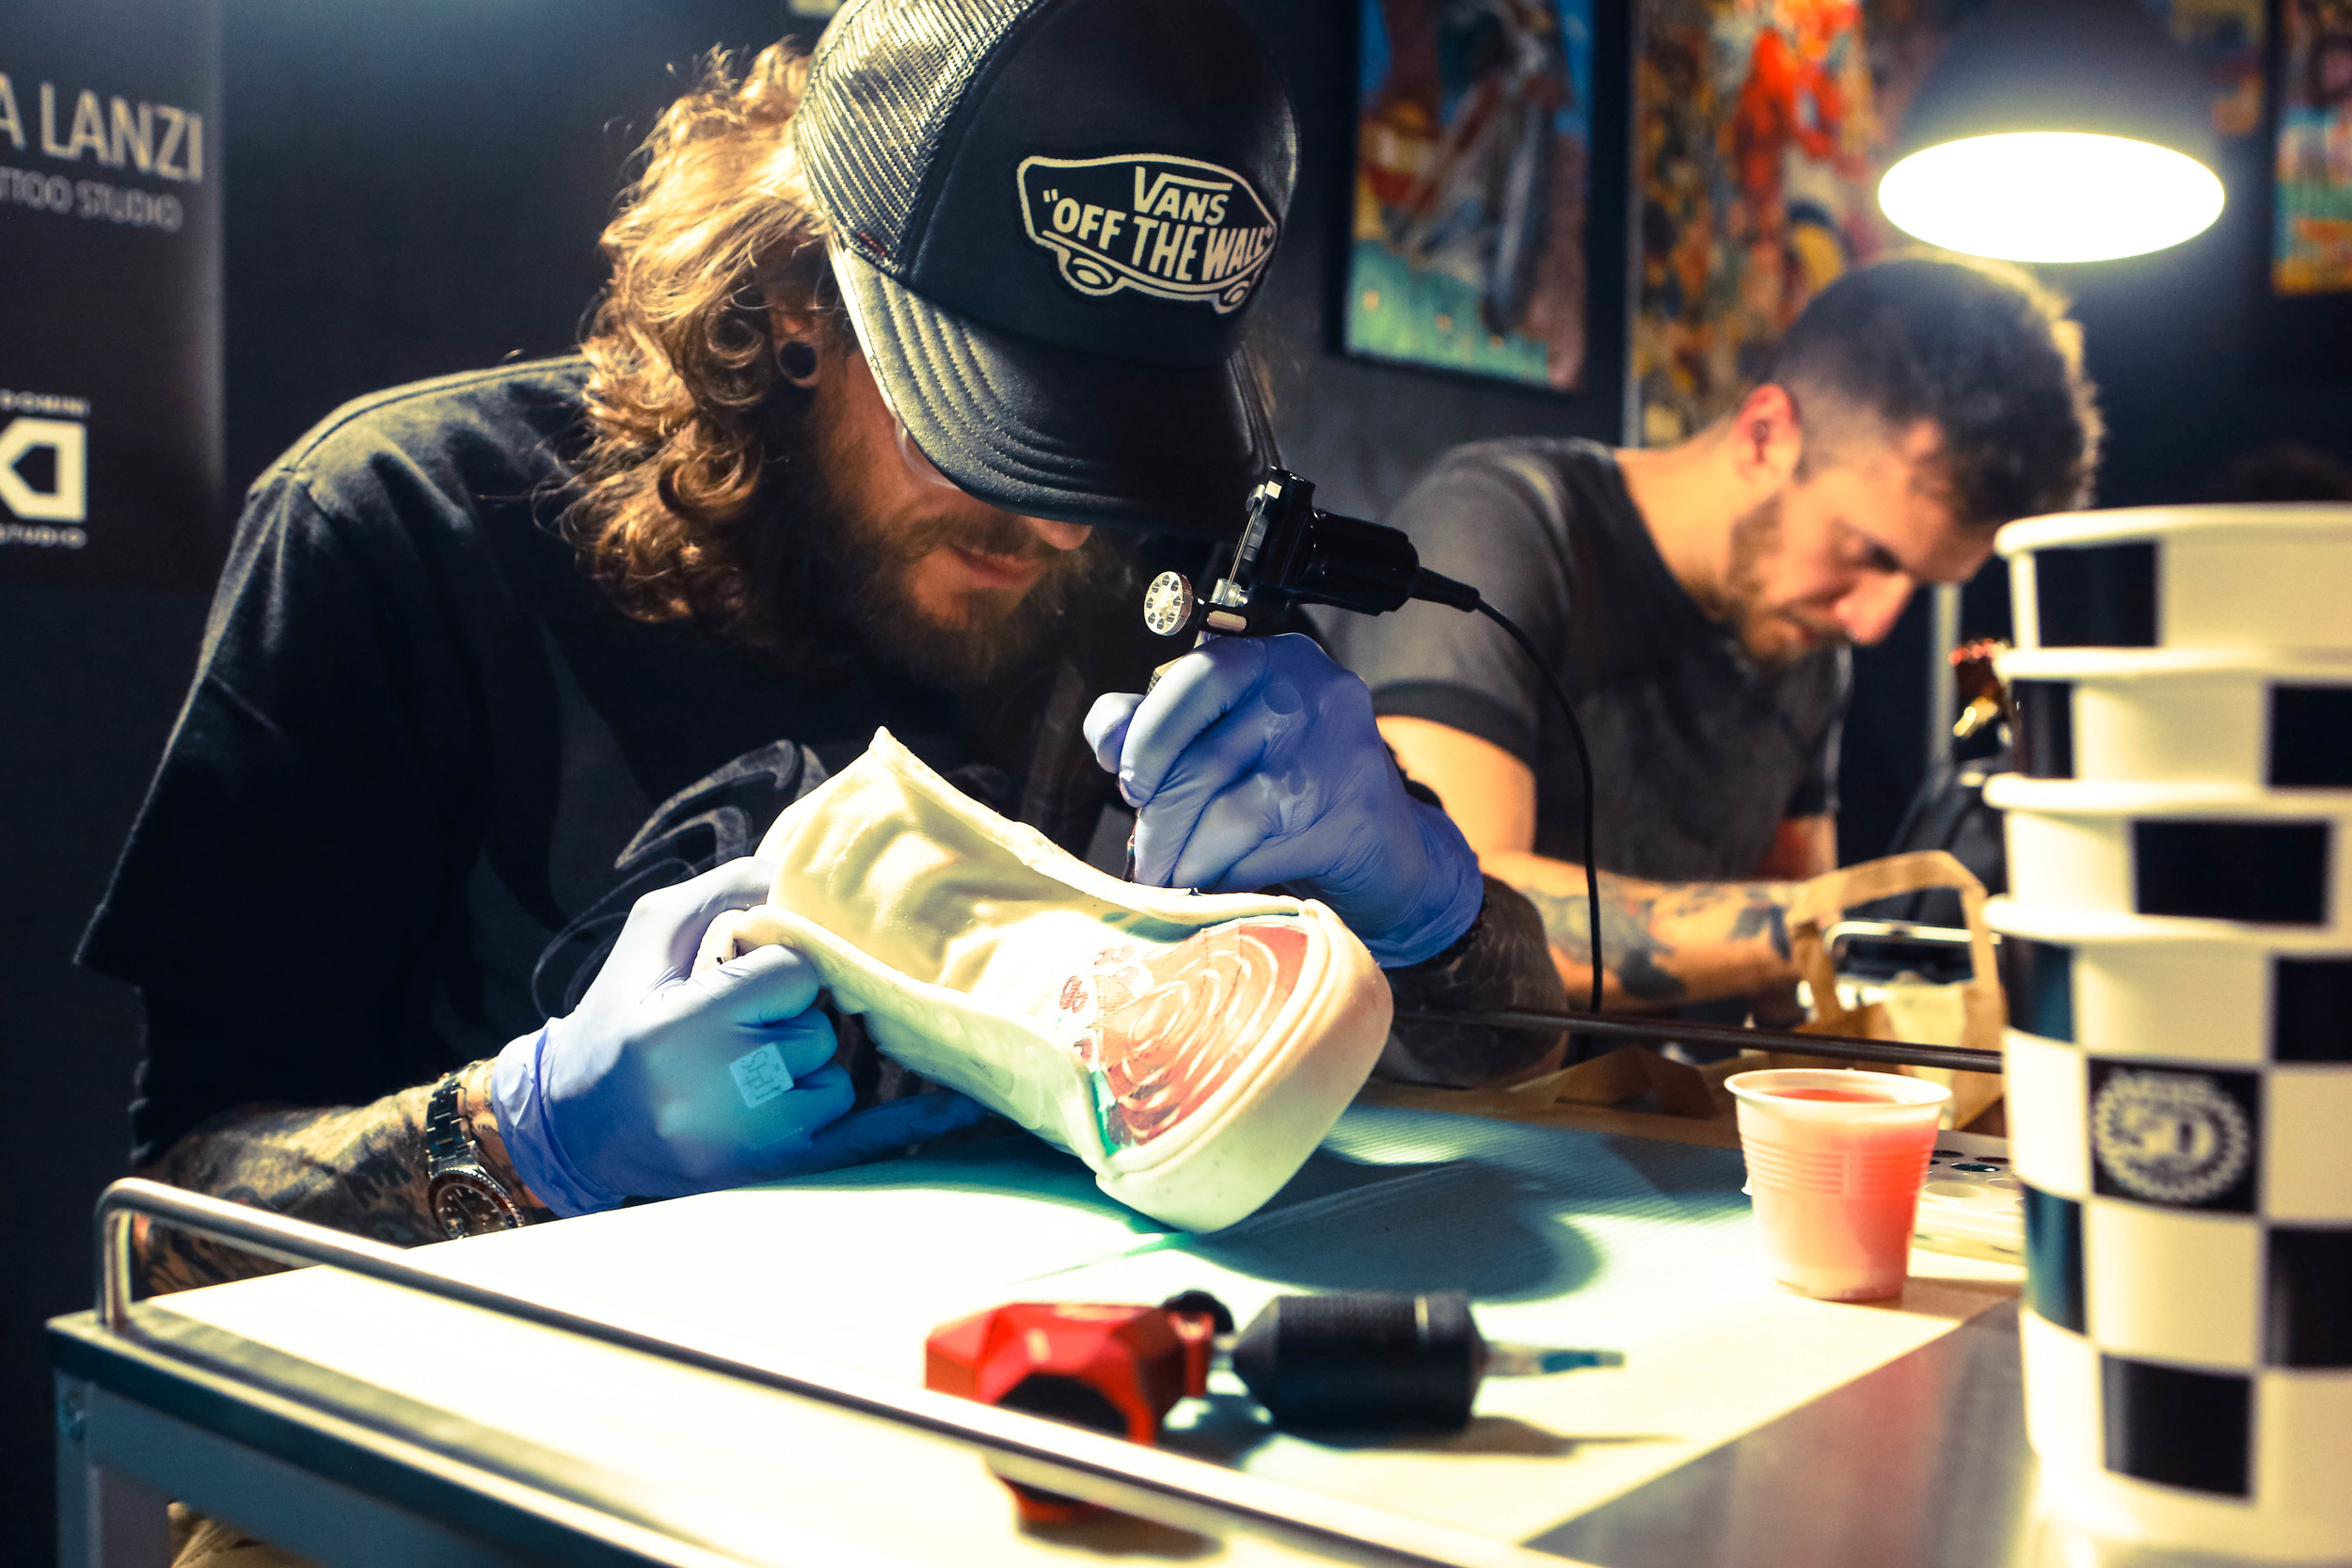 Vans Ink Art Exhibition & Live Tattooing